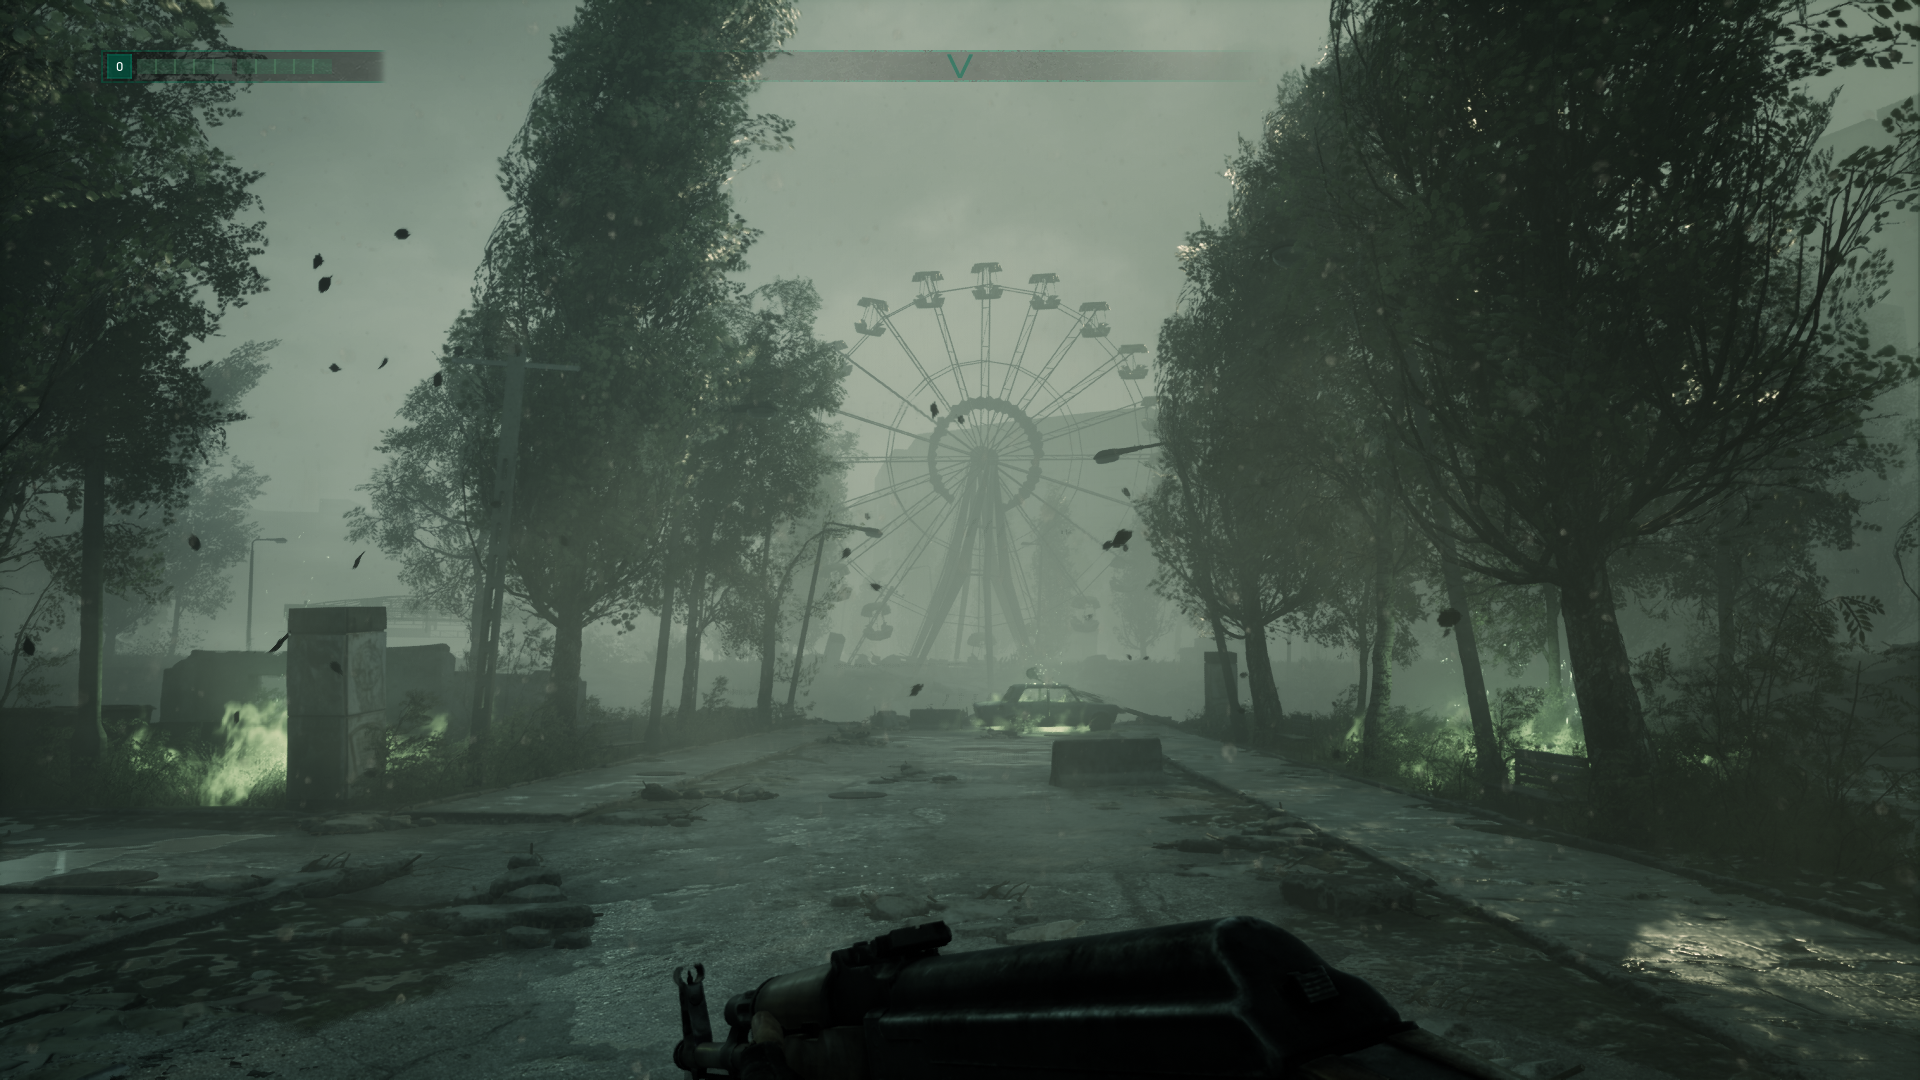 ChernobylGame-Win64-Shipping 2021-07-29 16-23-46-09.png